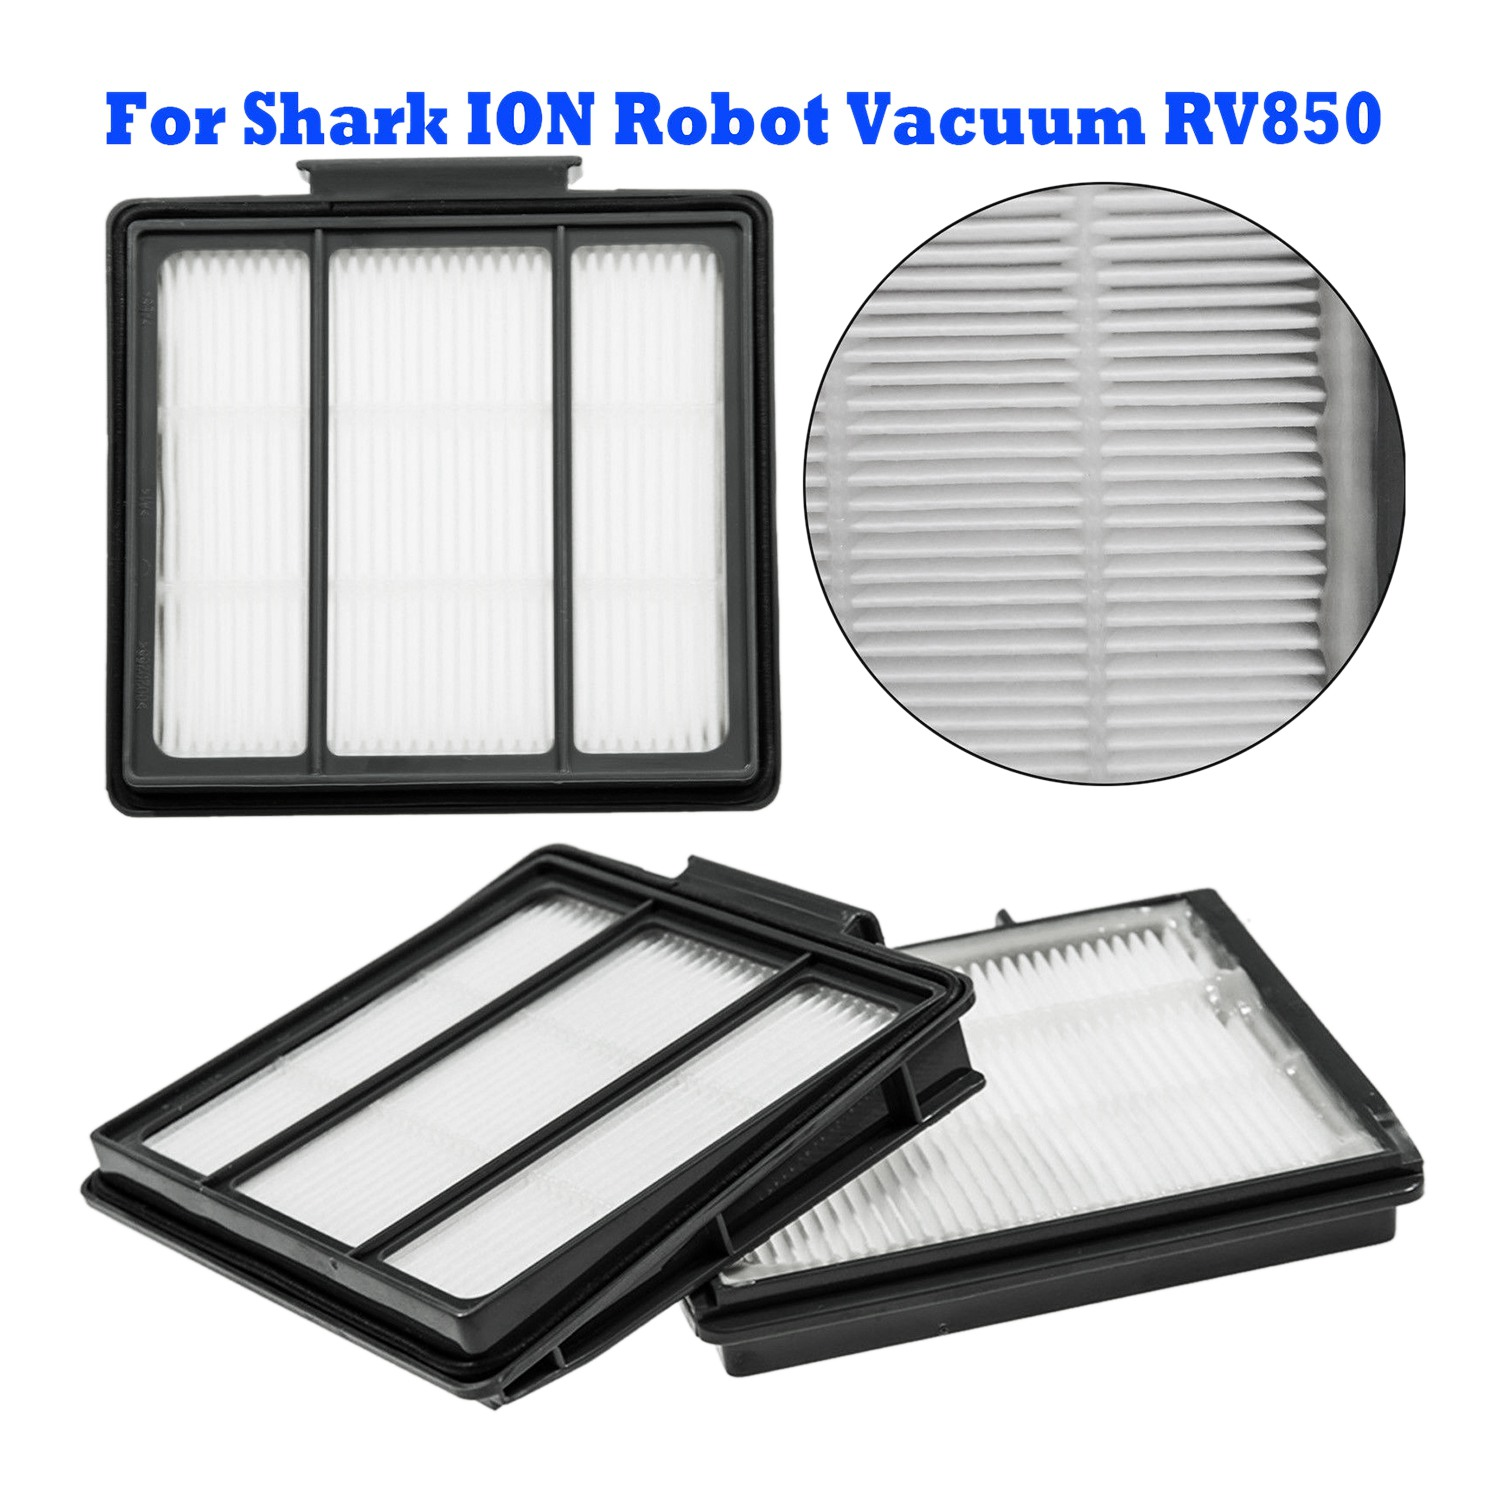 Purposeful Eas-vacuum Cleaner Hepa Filter Kit Replacement For Shark Ion Robot Vacuum Rv850 With Wlan Elegant In Style Home Appliances Vacuum Cleaner Parts